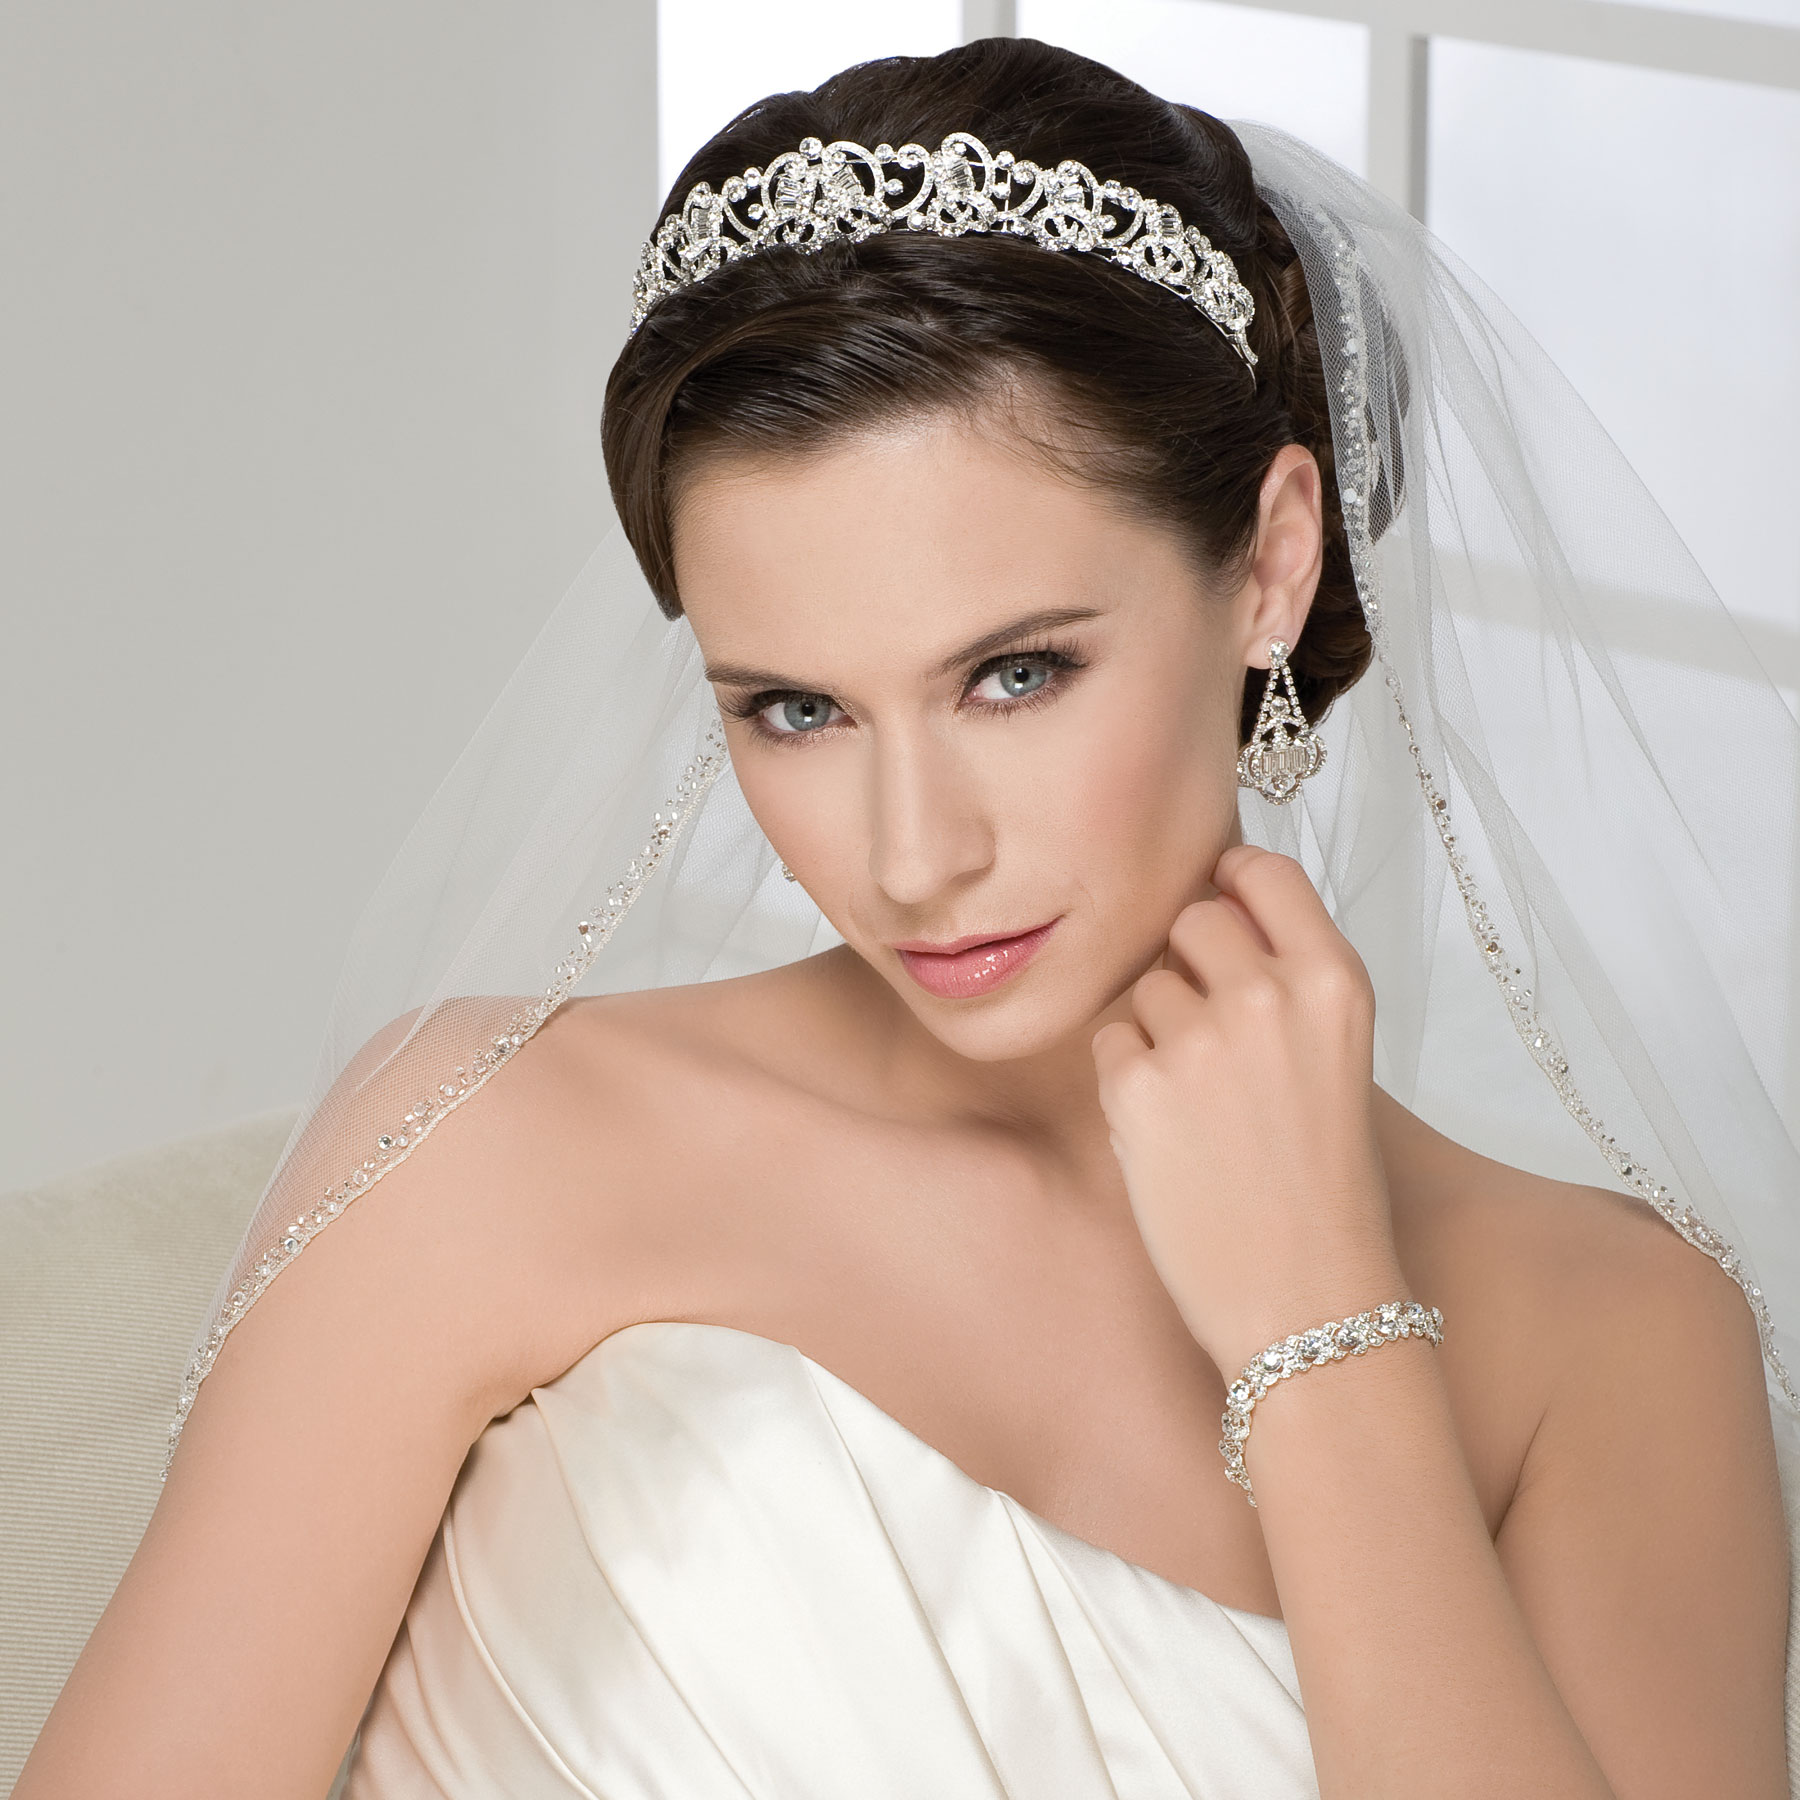 Bridal tiaras and veils - Bel Aire Bridal 6210 Jpg